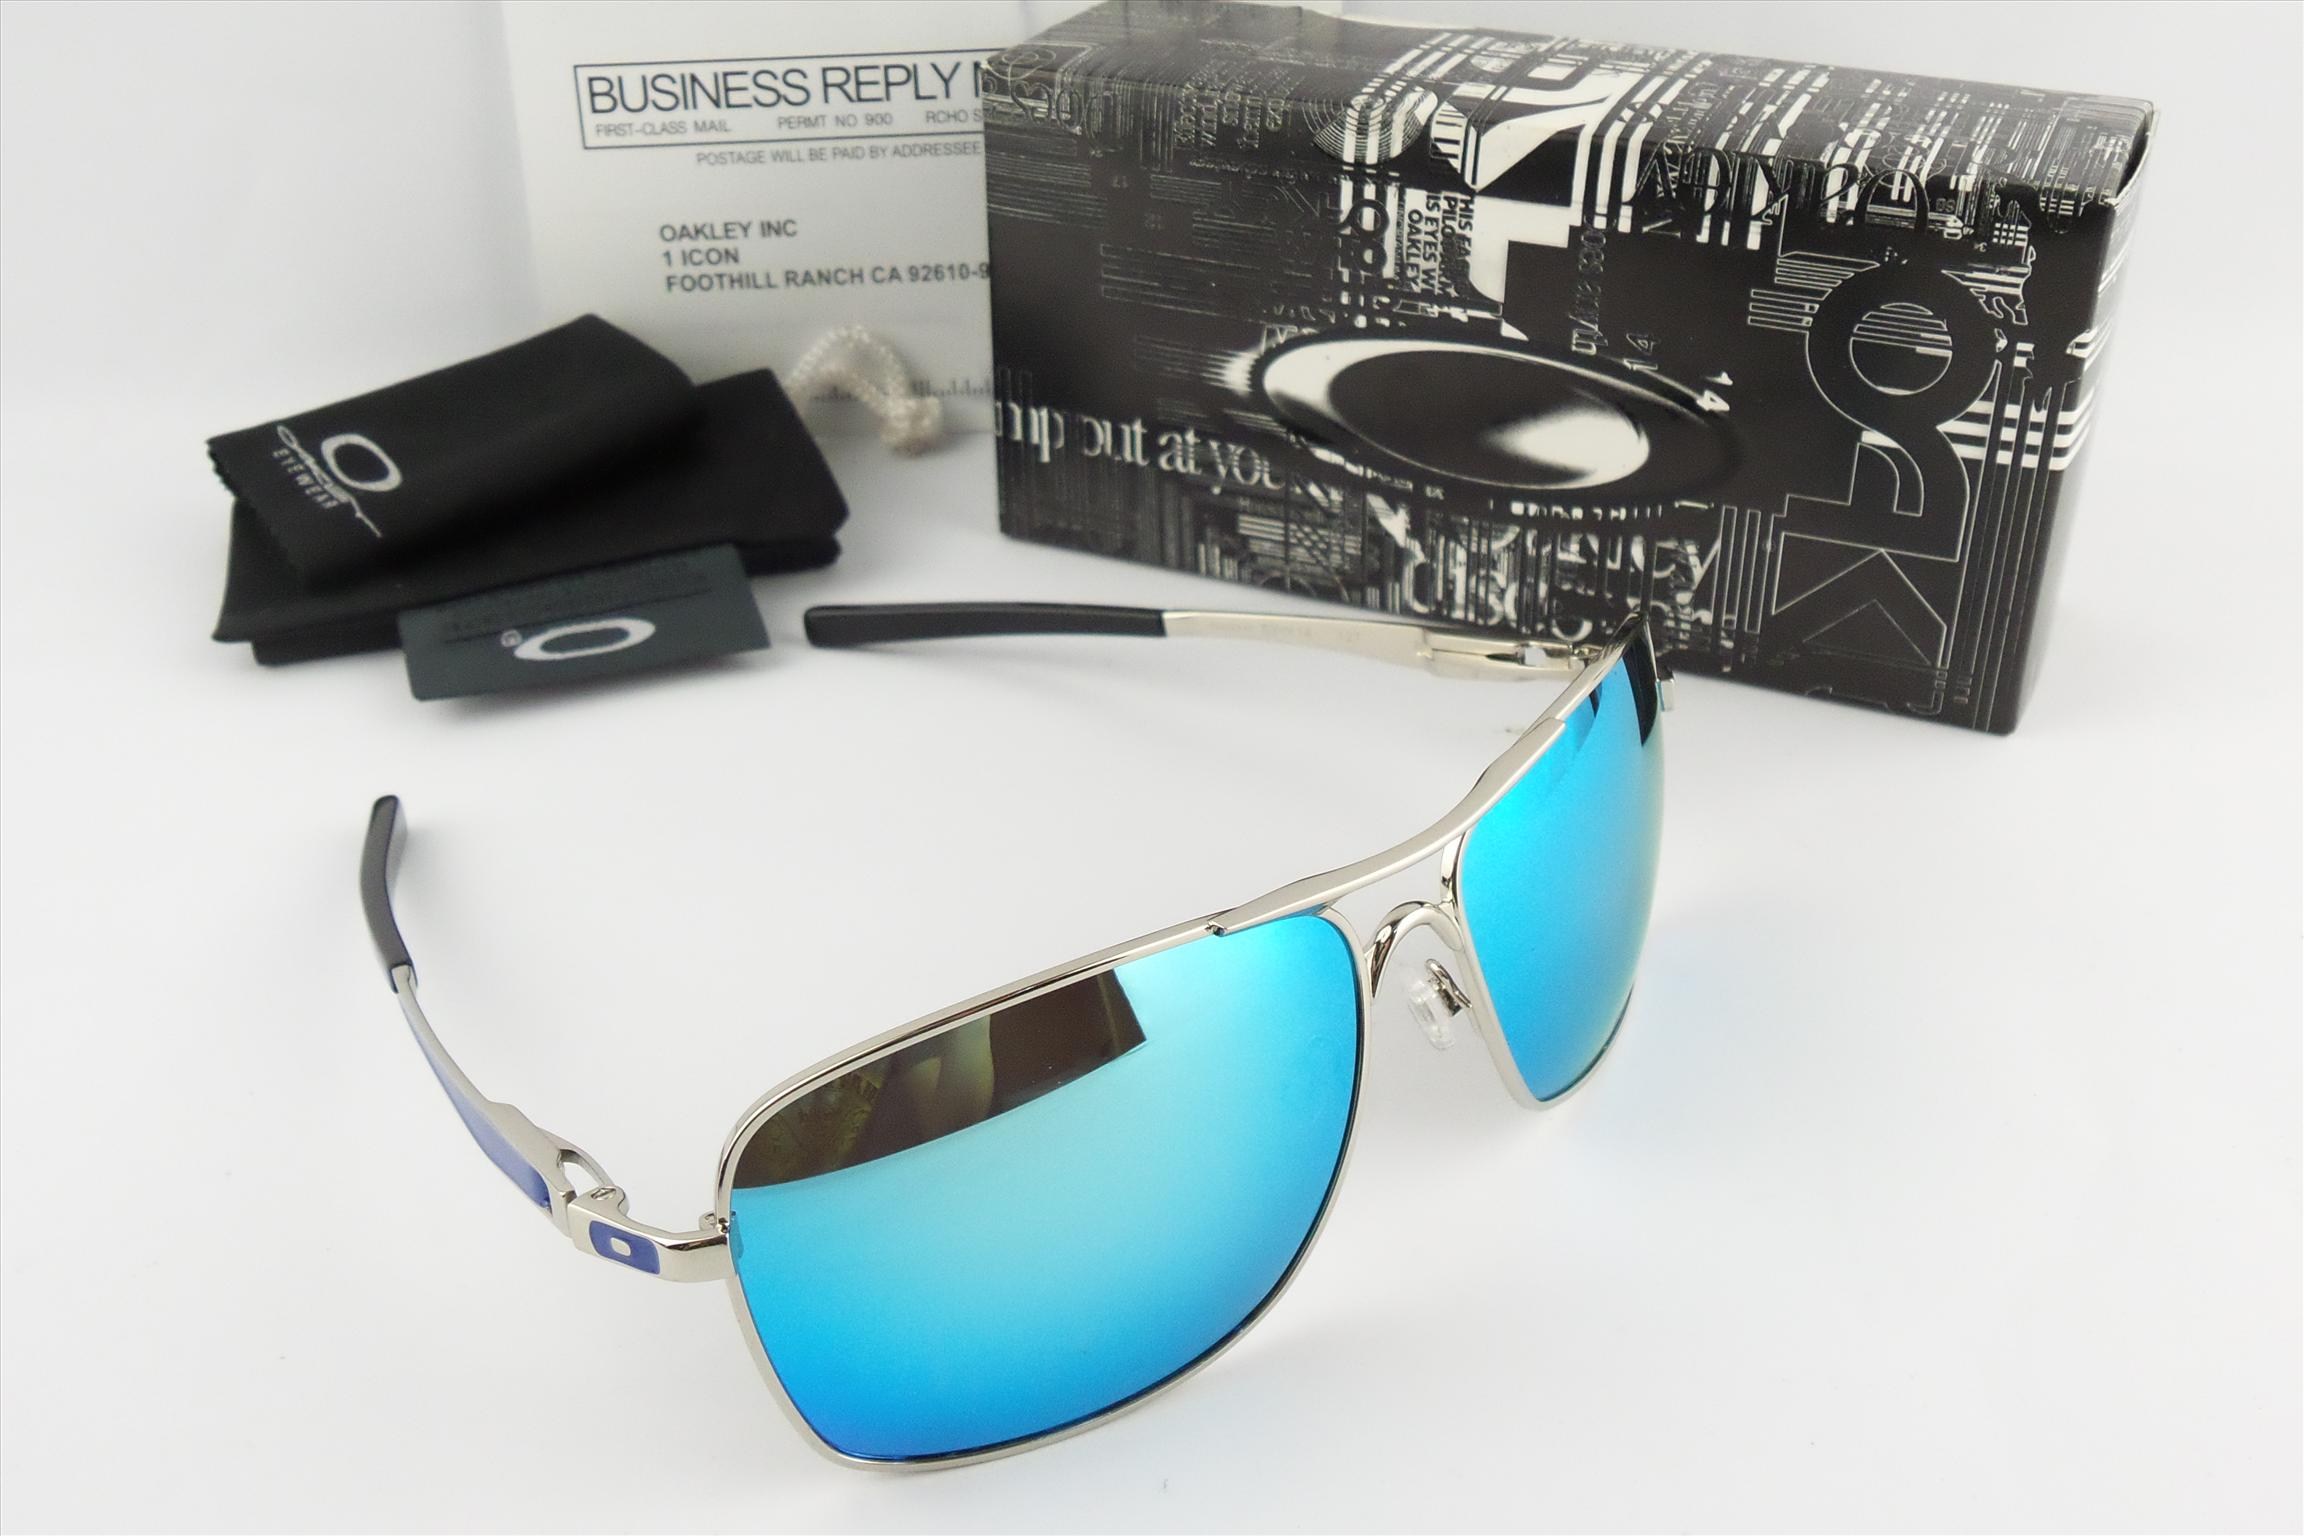 8dbc14a581f Sunglasses Oakley Outlet Store Locations Malaysia « Heritage Malta